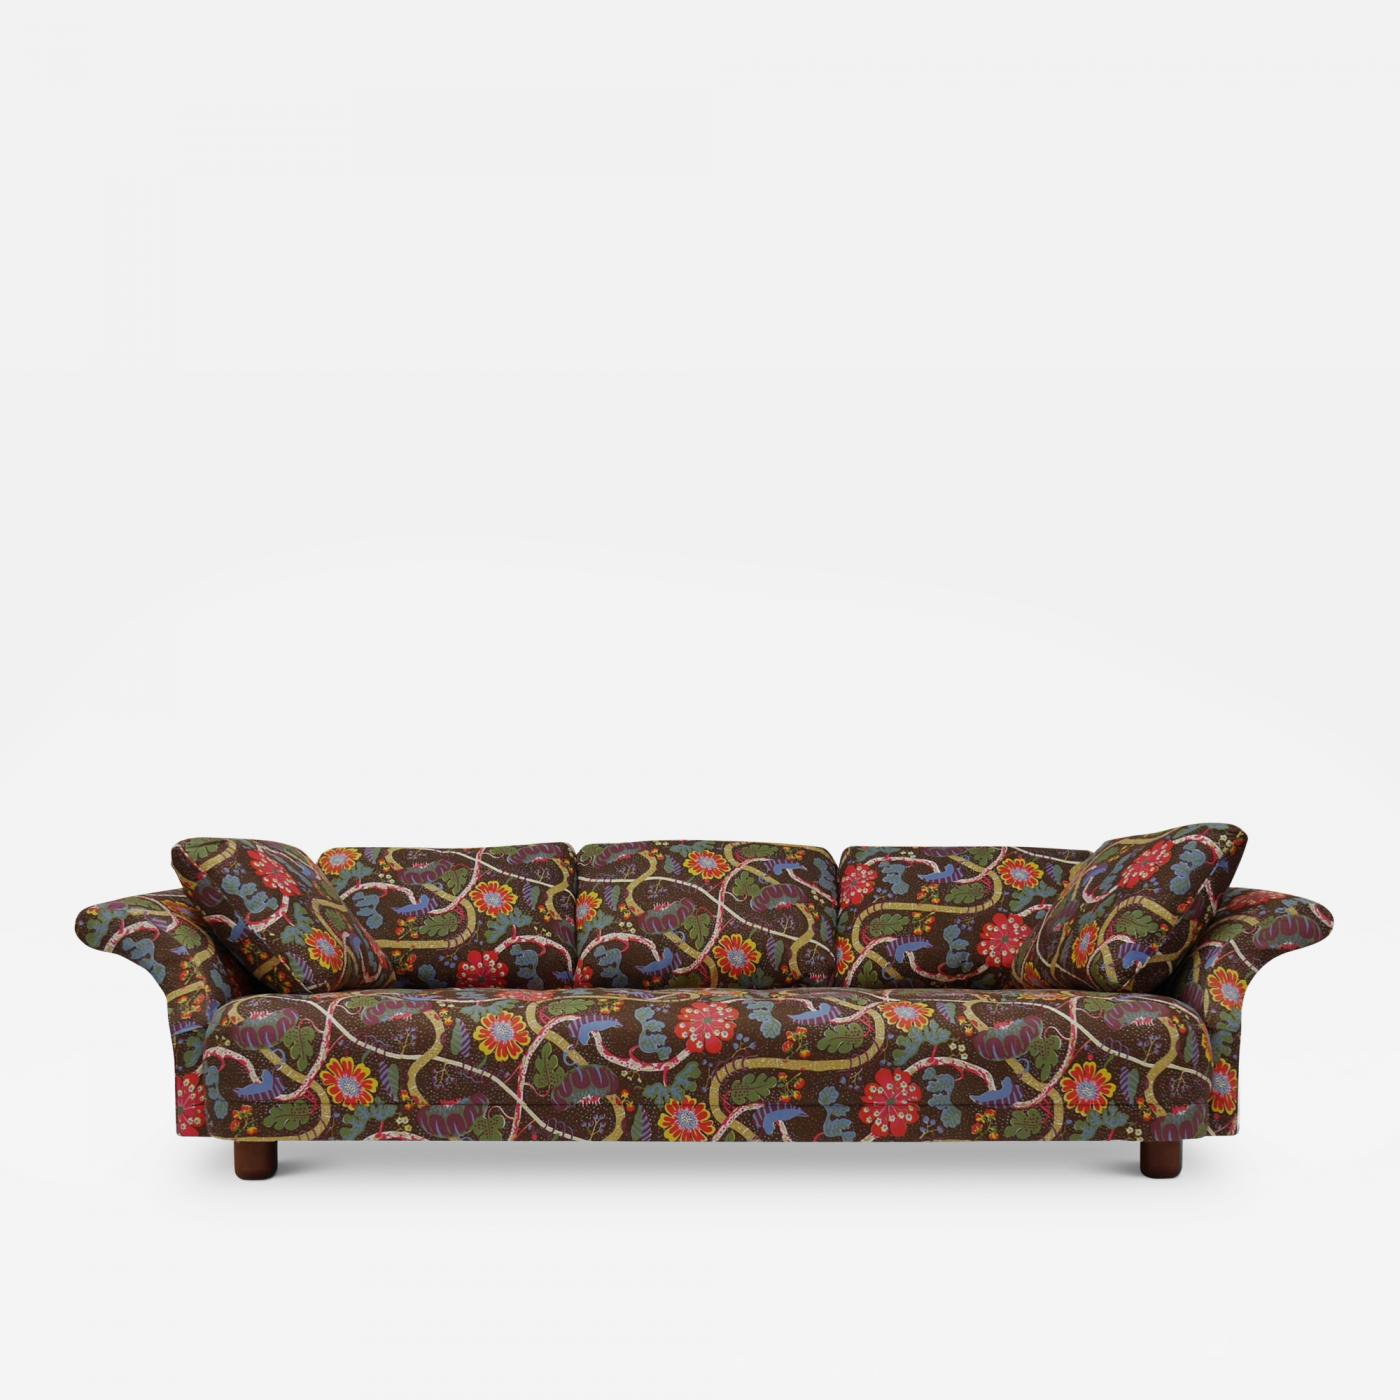 Josef Frank Liljevalch Sofa and Lounge Chair by Josef Frank